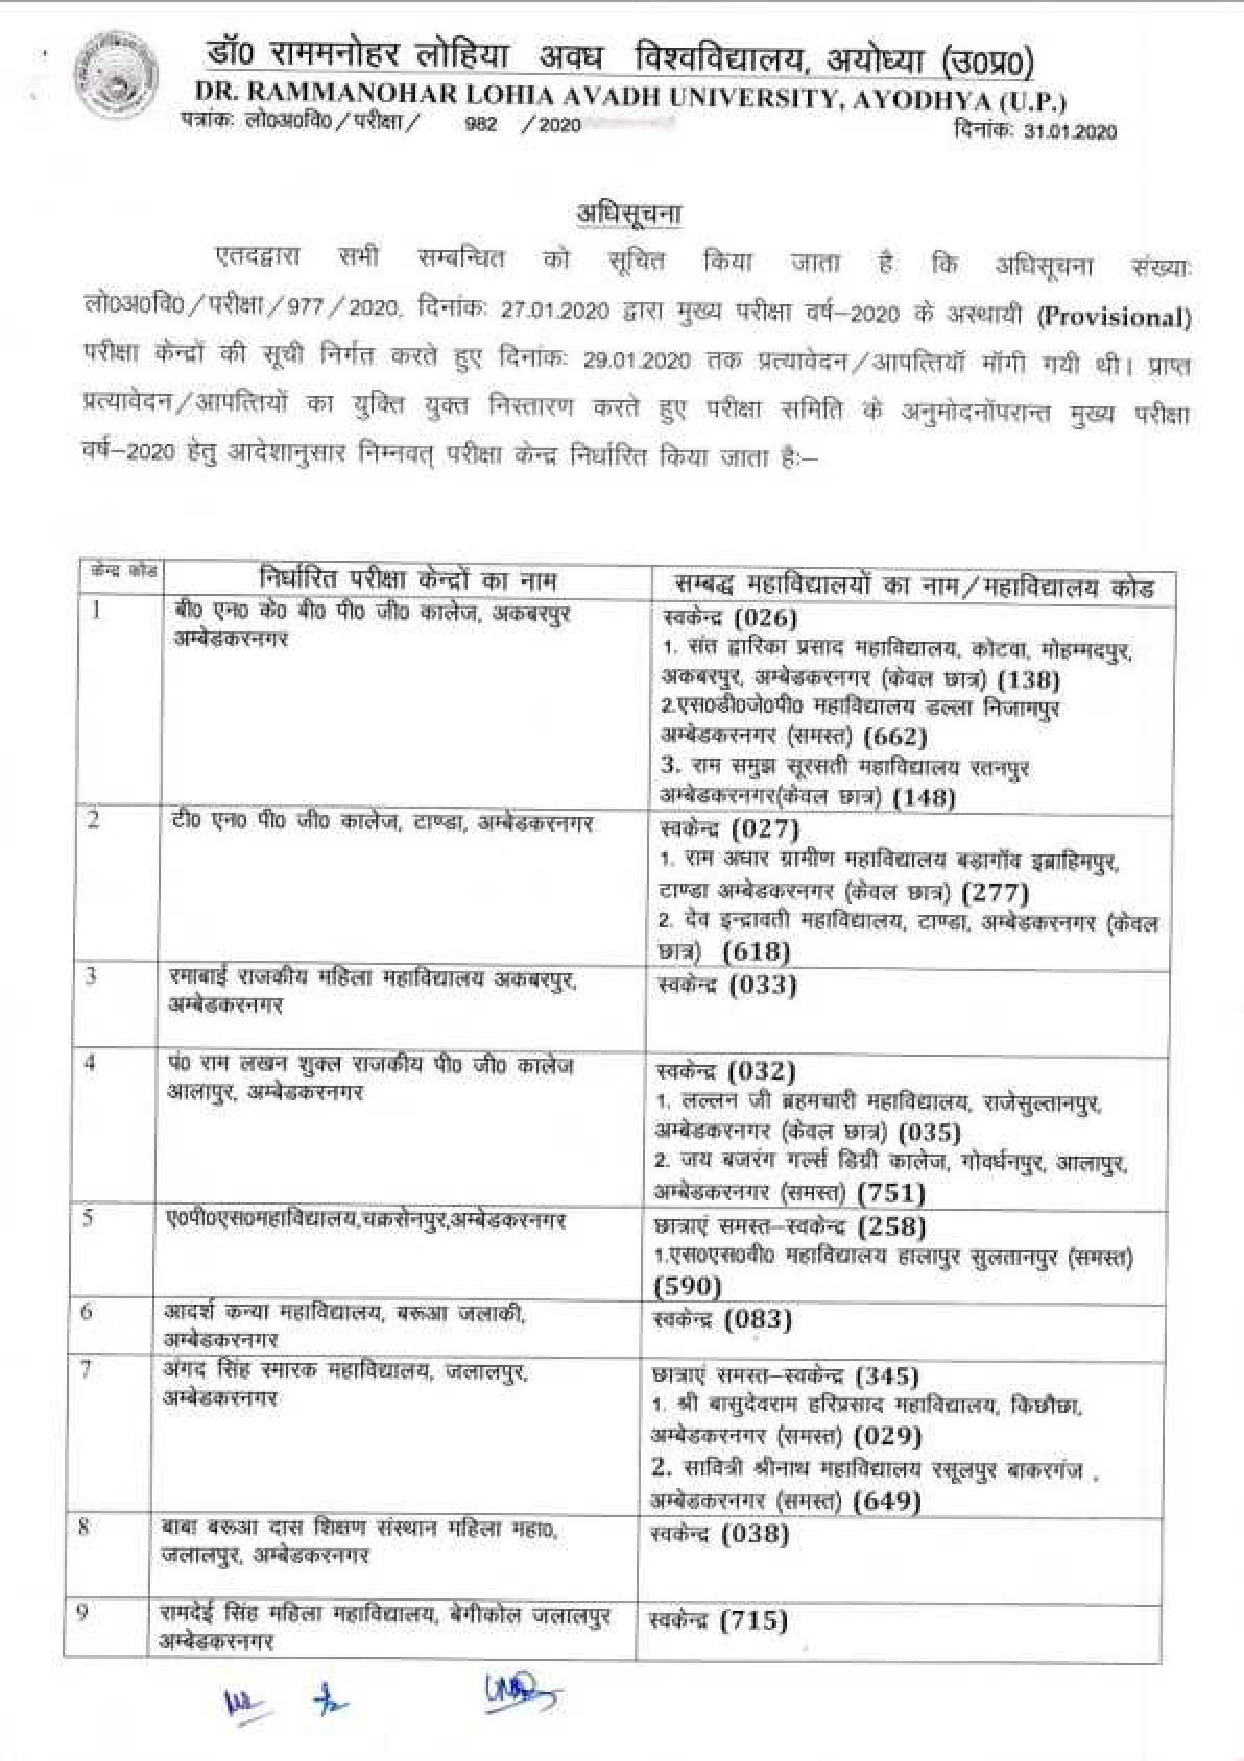 RMLAU Annual Exam Centre List